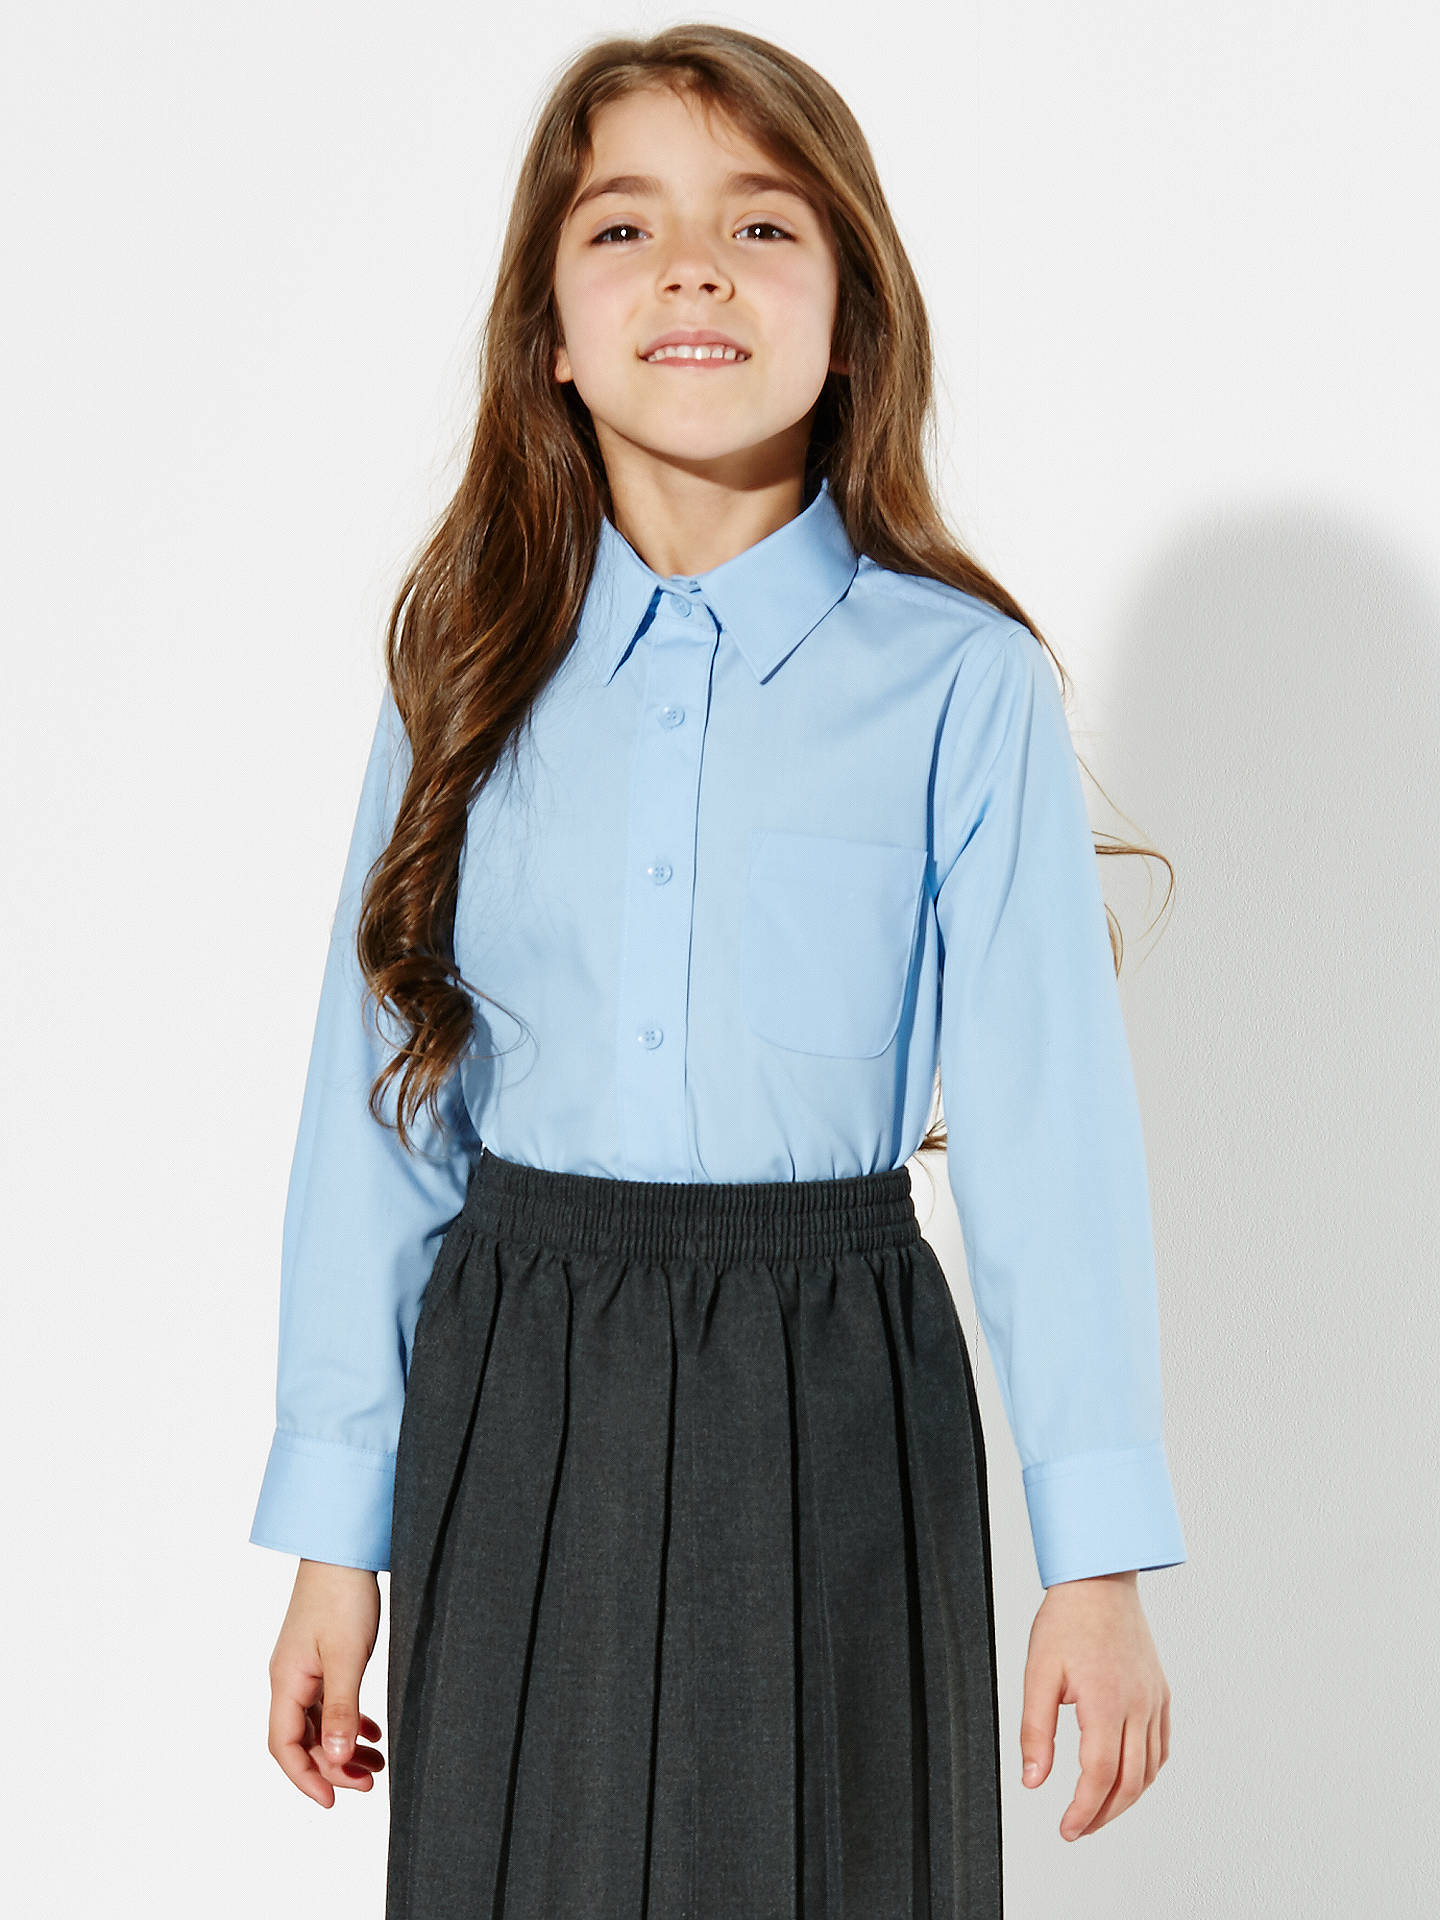 44079bf34 Buy John Lewis & Partners Girls' Long Sleeve School Blouse, Pack of 2, ...